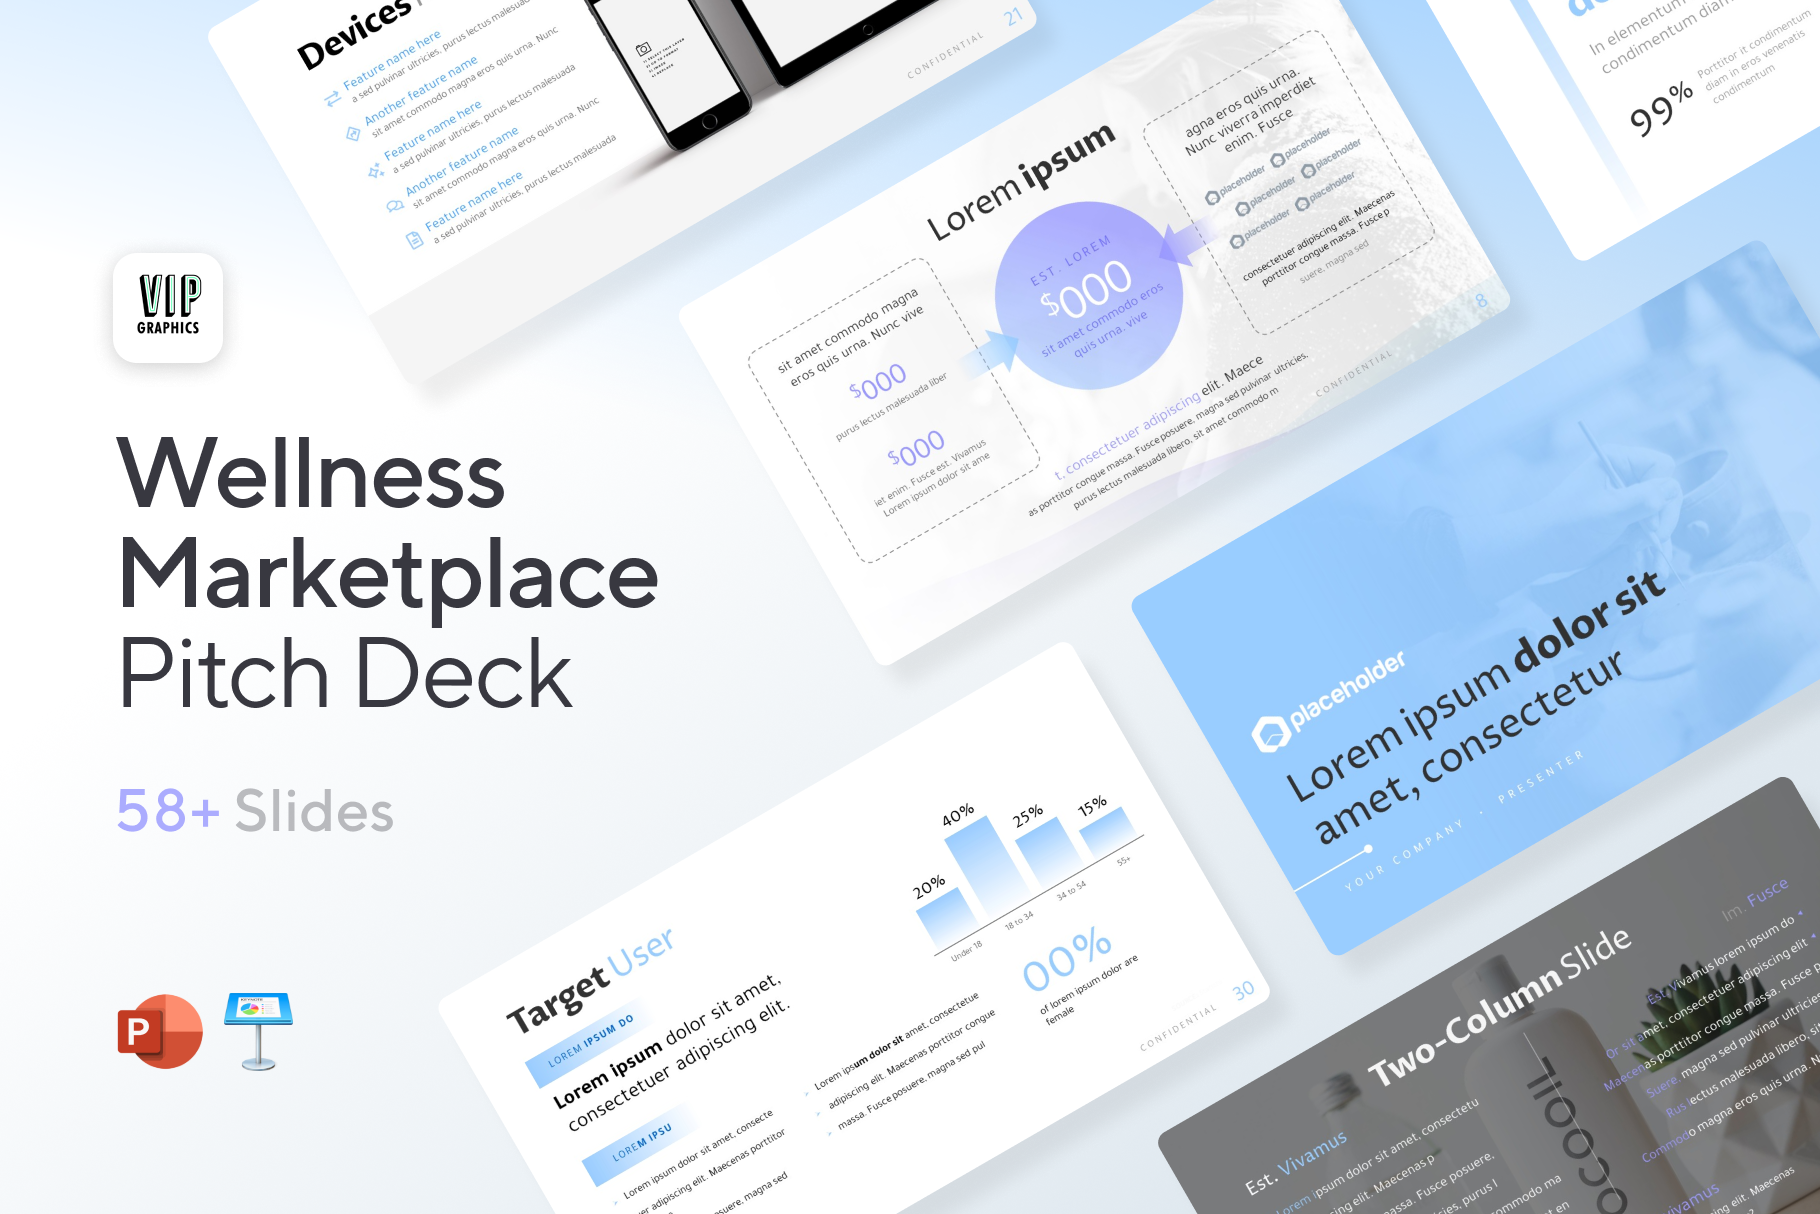 Wellness & Marketplace Pitch Deck: Proven slide templates designed for marketplaces & wellness brands. | VIP Graphics